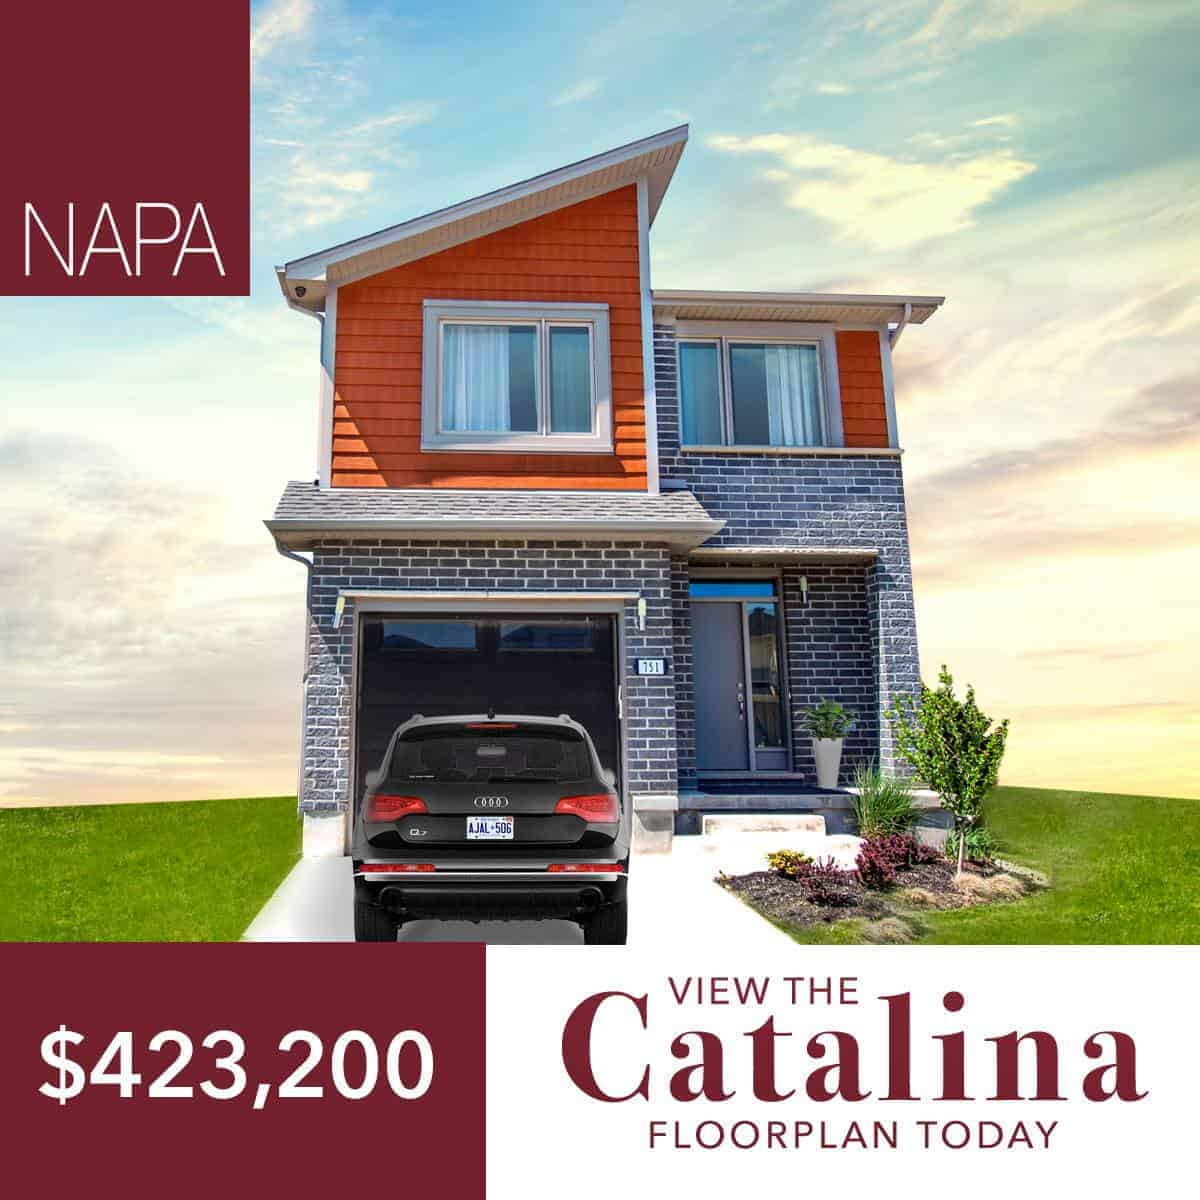 The Catalina New Home in London Ontario for $423,200